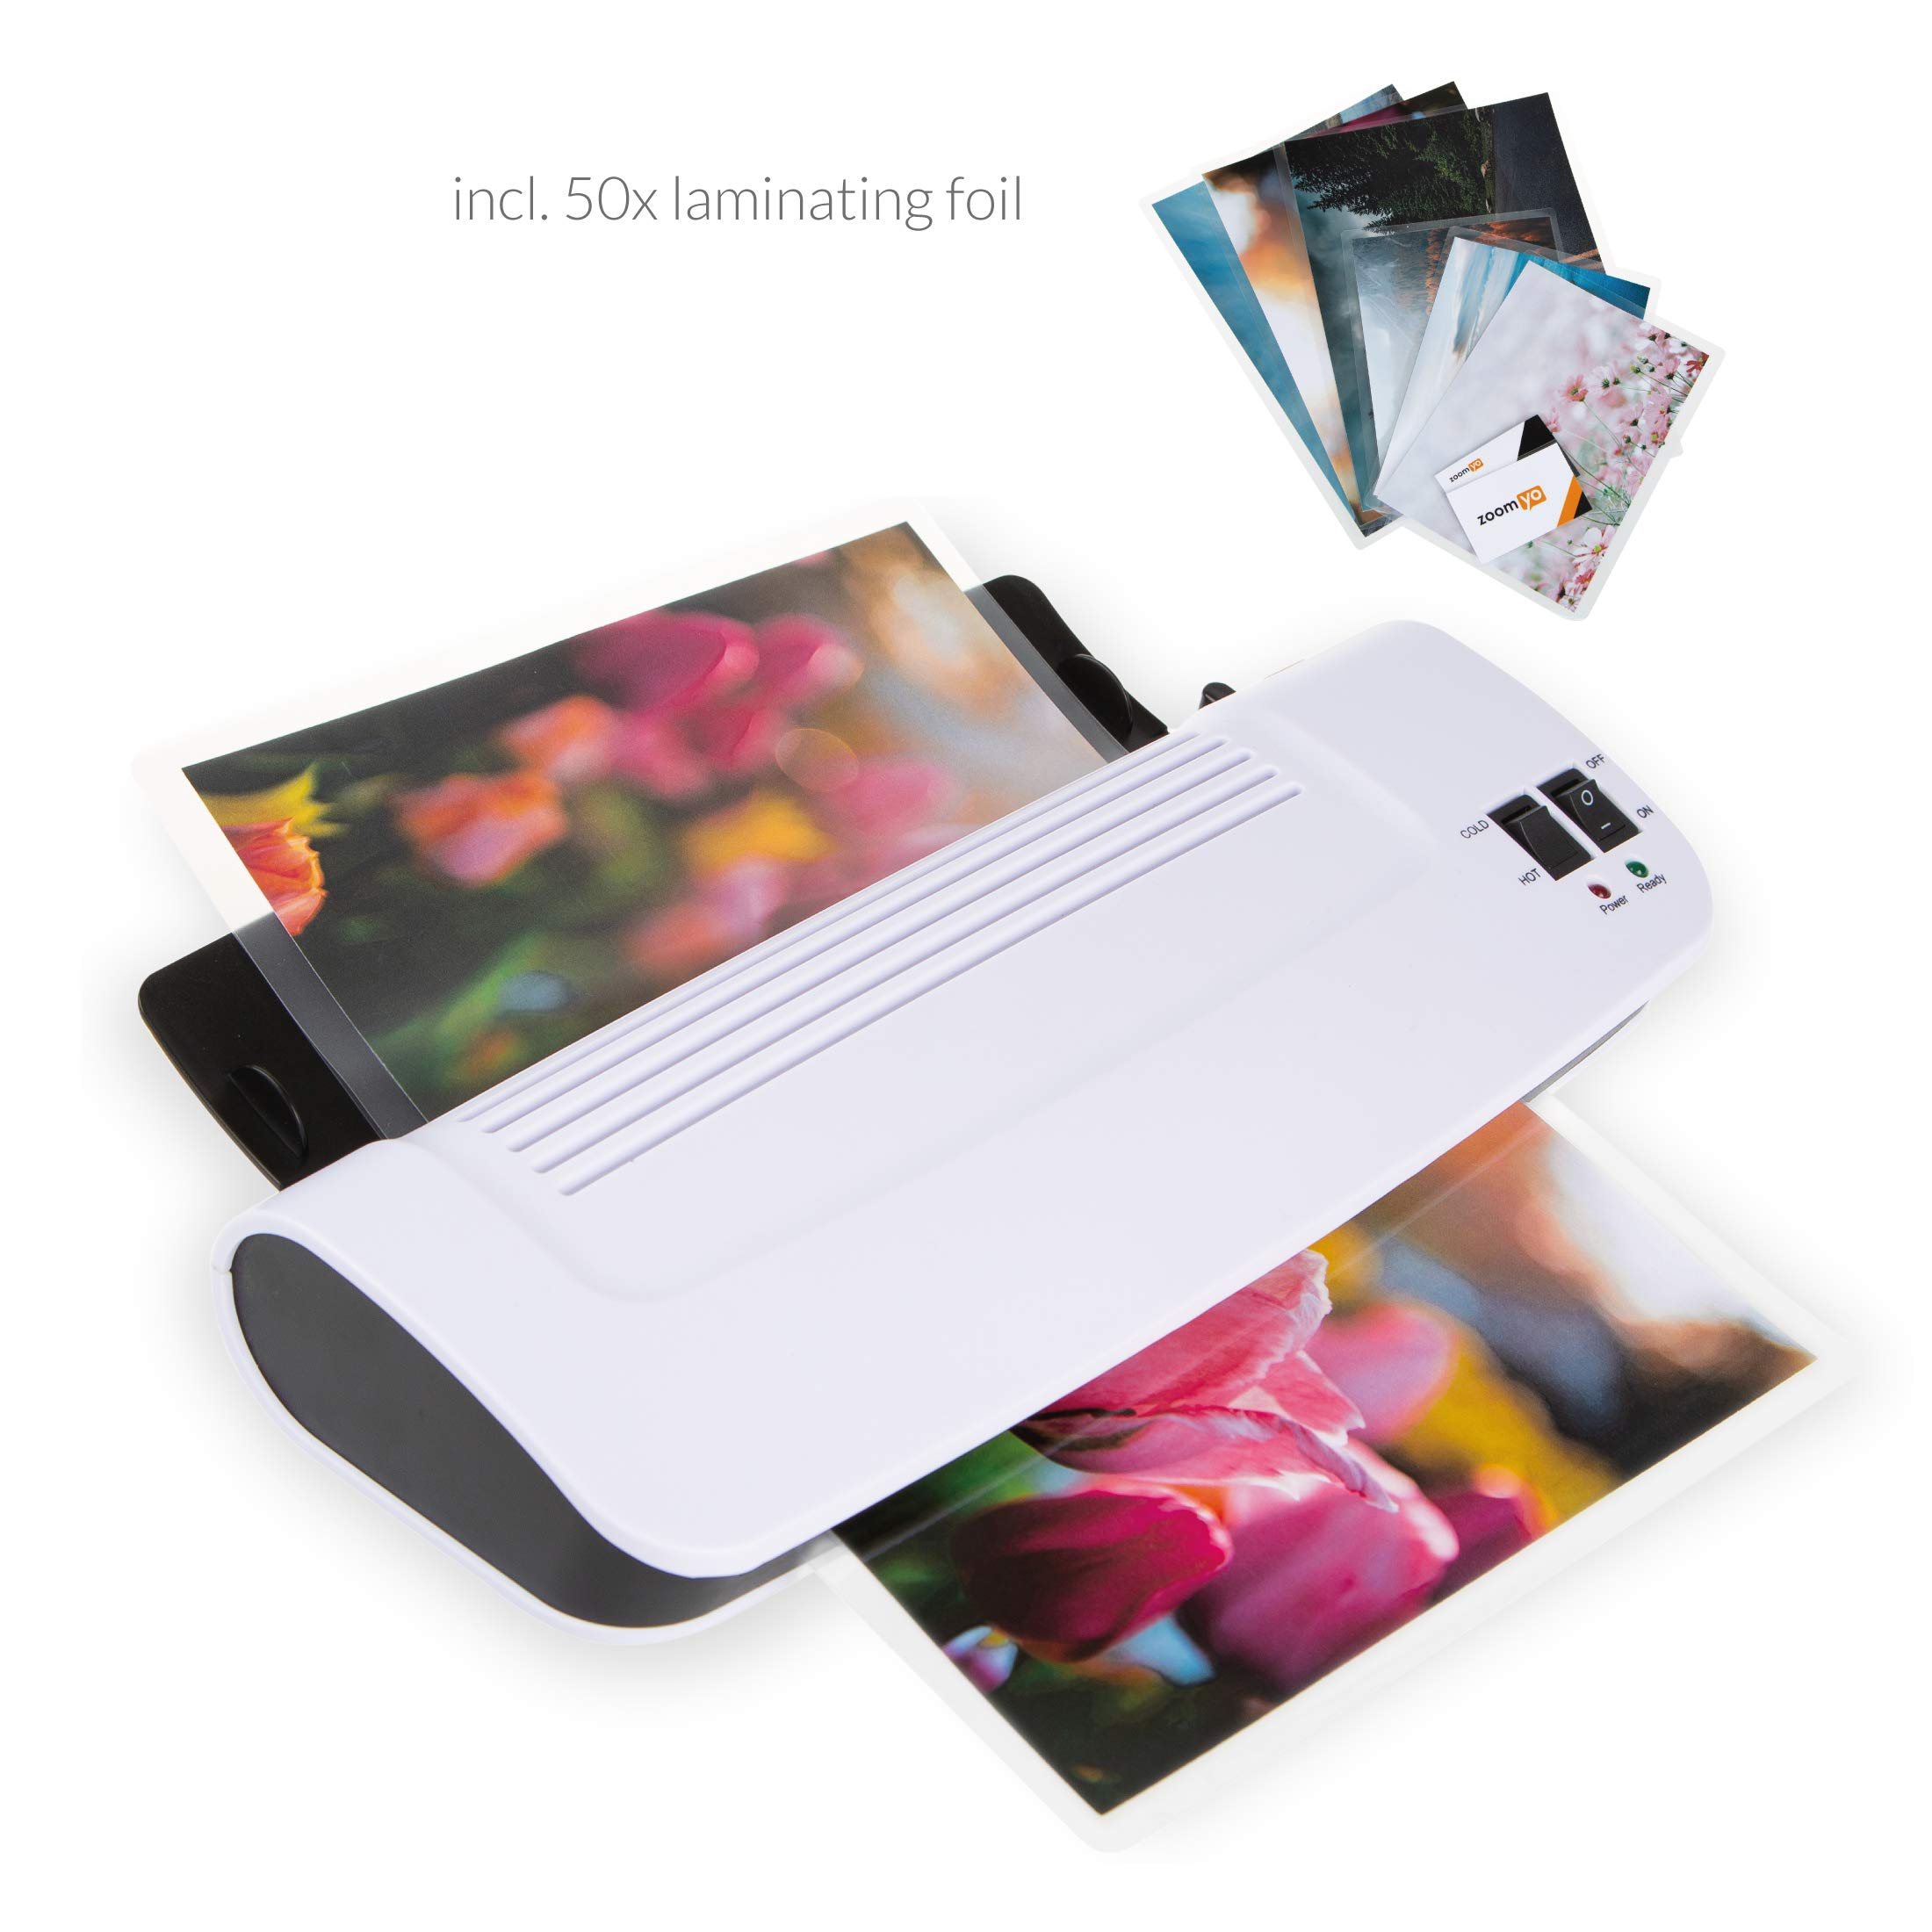 Zoomyo 9'' hot & cold laminator Z9-5 warms up in just 3 to 5 minutes by Zoomyo